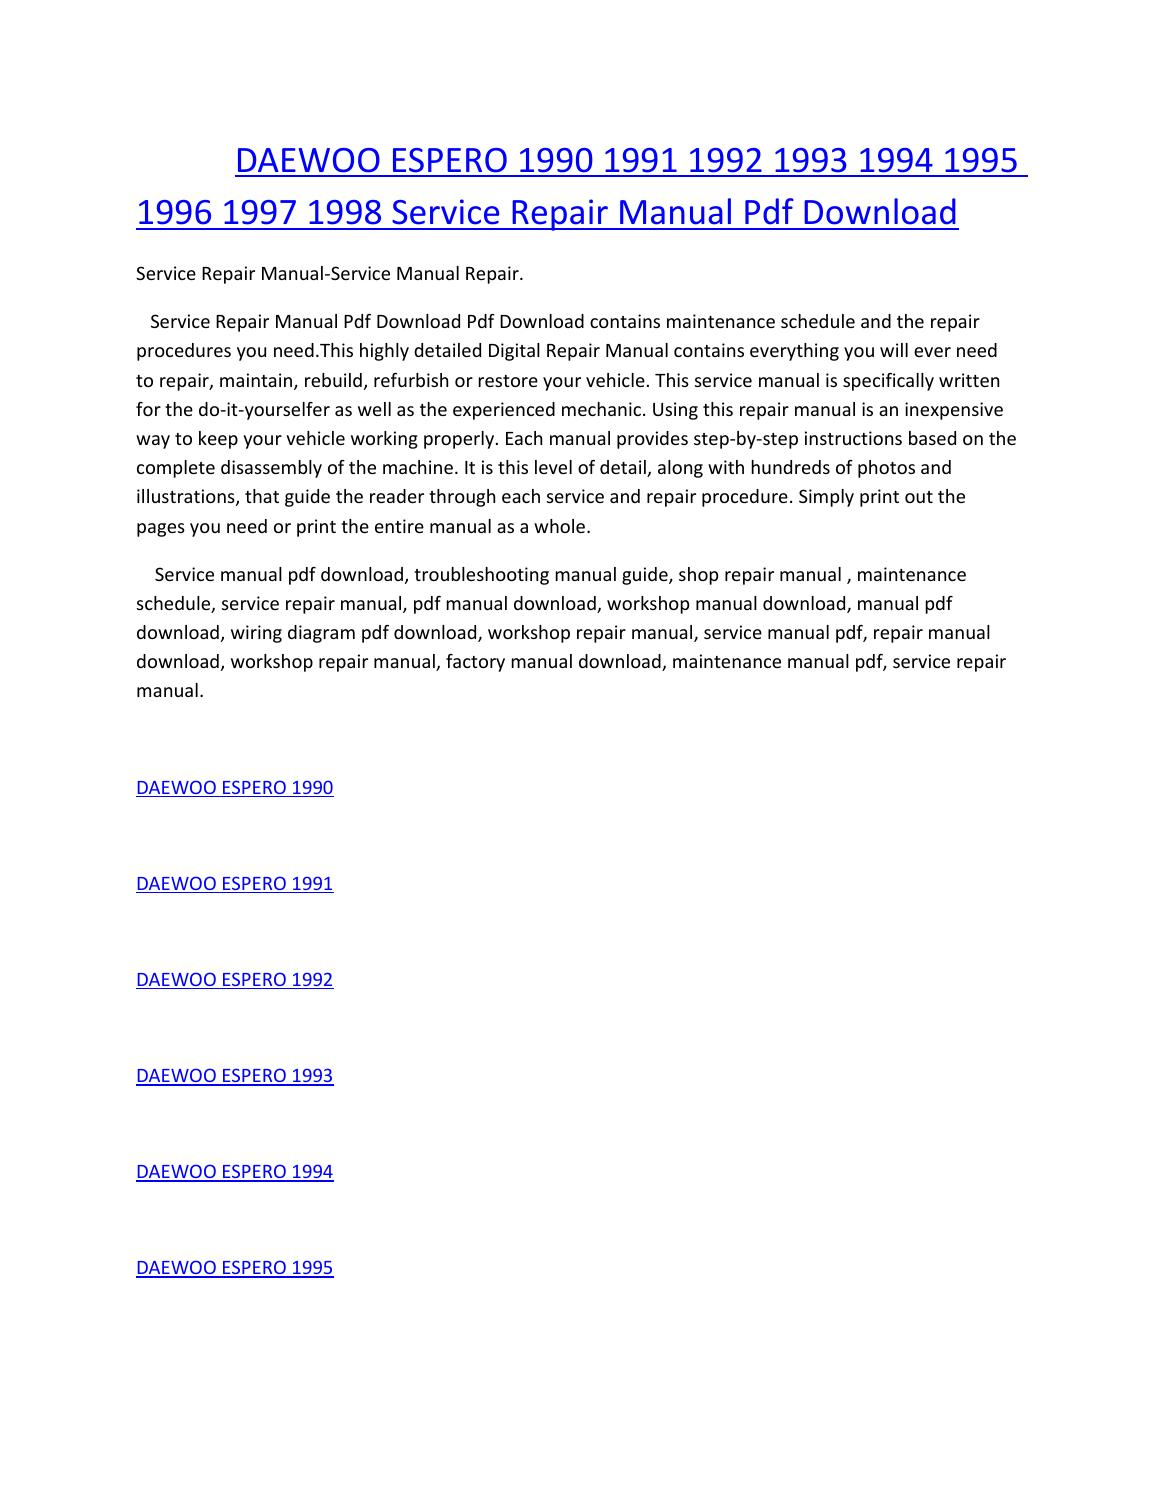 Daewoo espero 1990 1991 1992 1993 1994 1995 1996 1997 1998 service manual  repair pdf download by amurgului - issuu